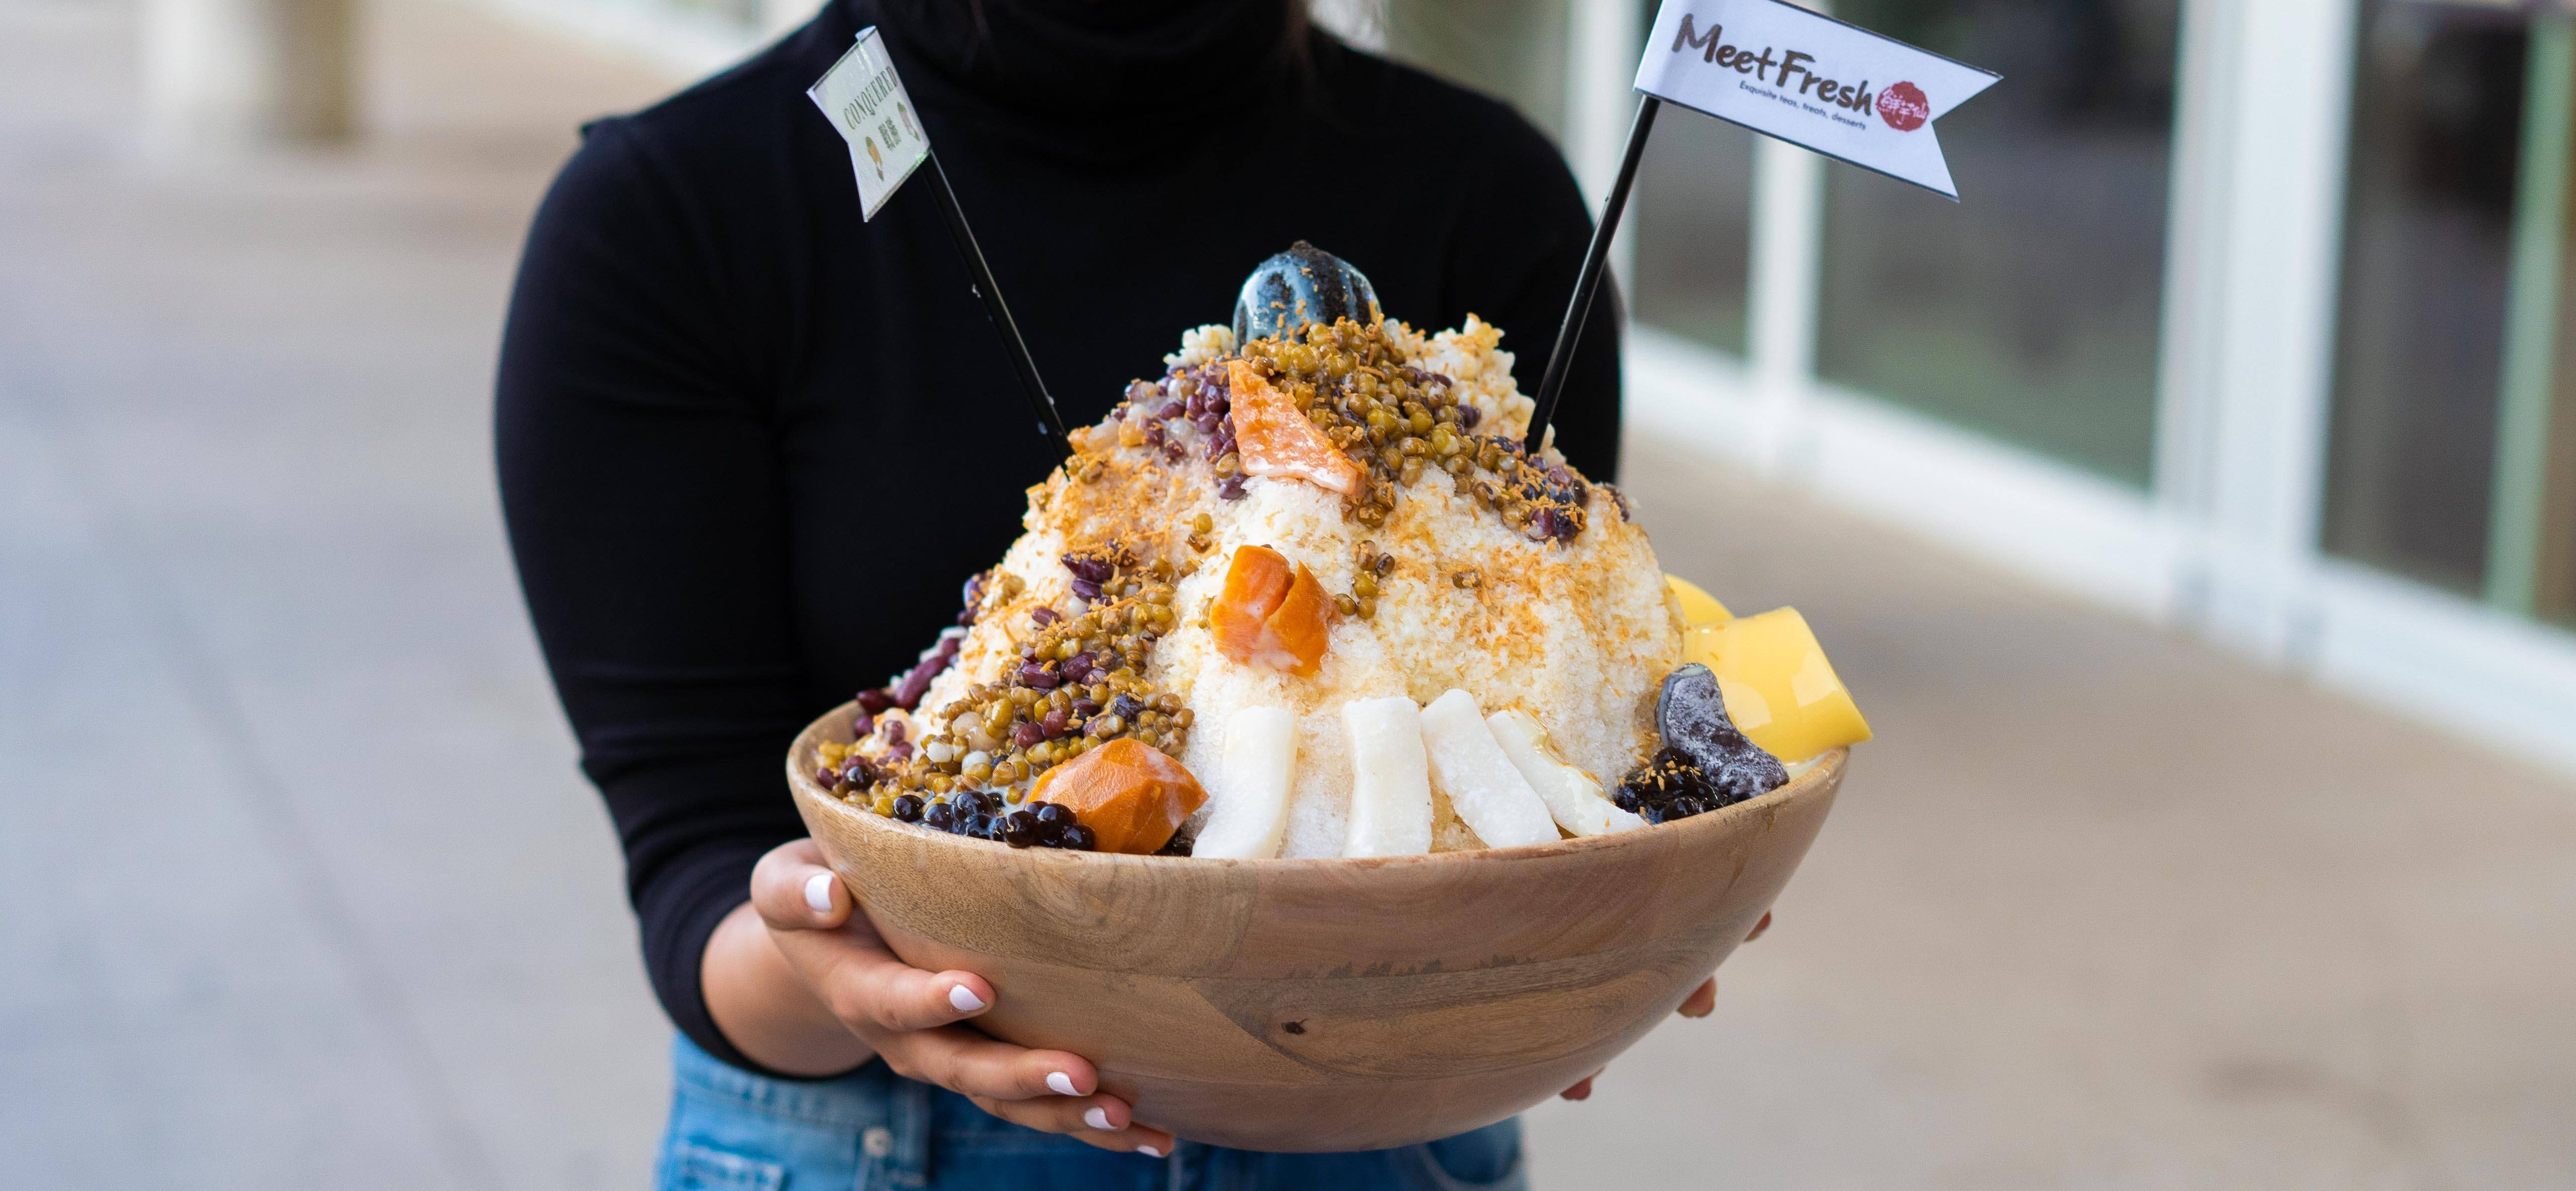 This Taiwanese Dessert spot is challenging people to eat their 10 lbs bowl of shaved ice